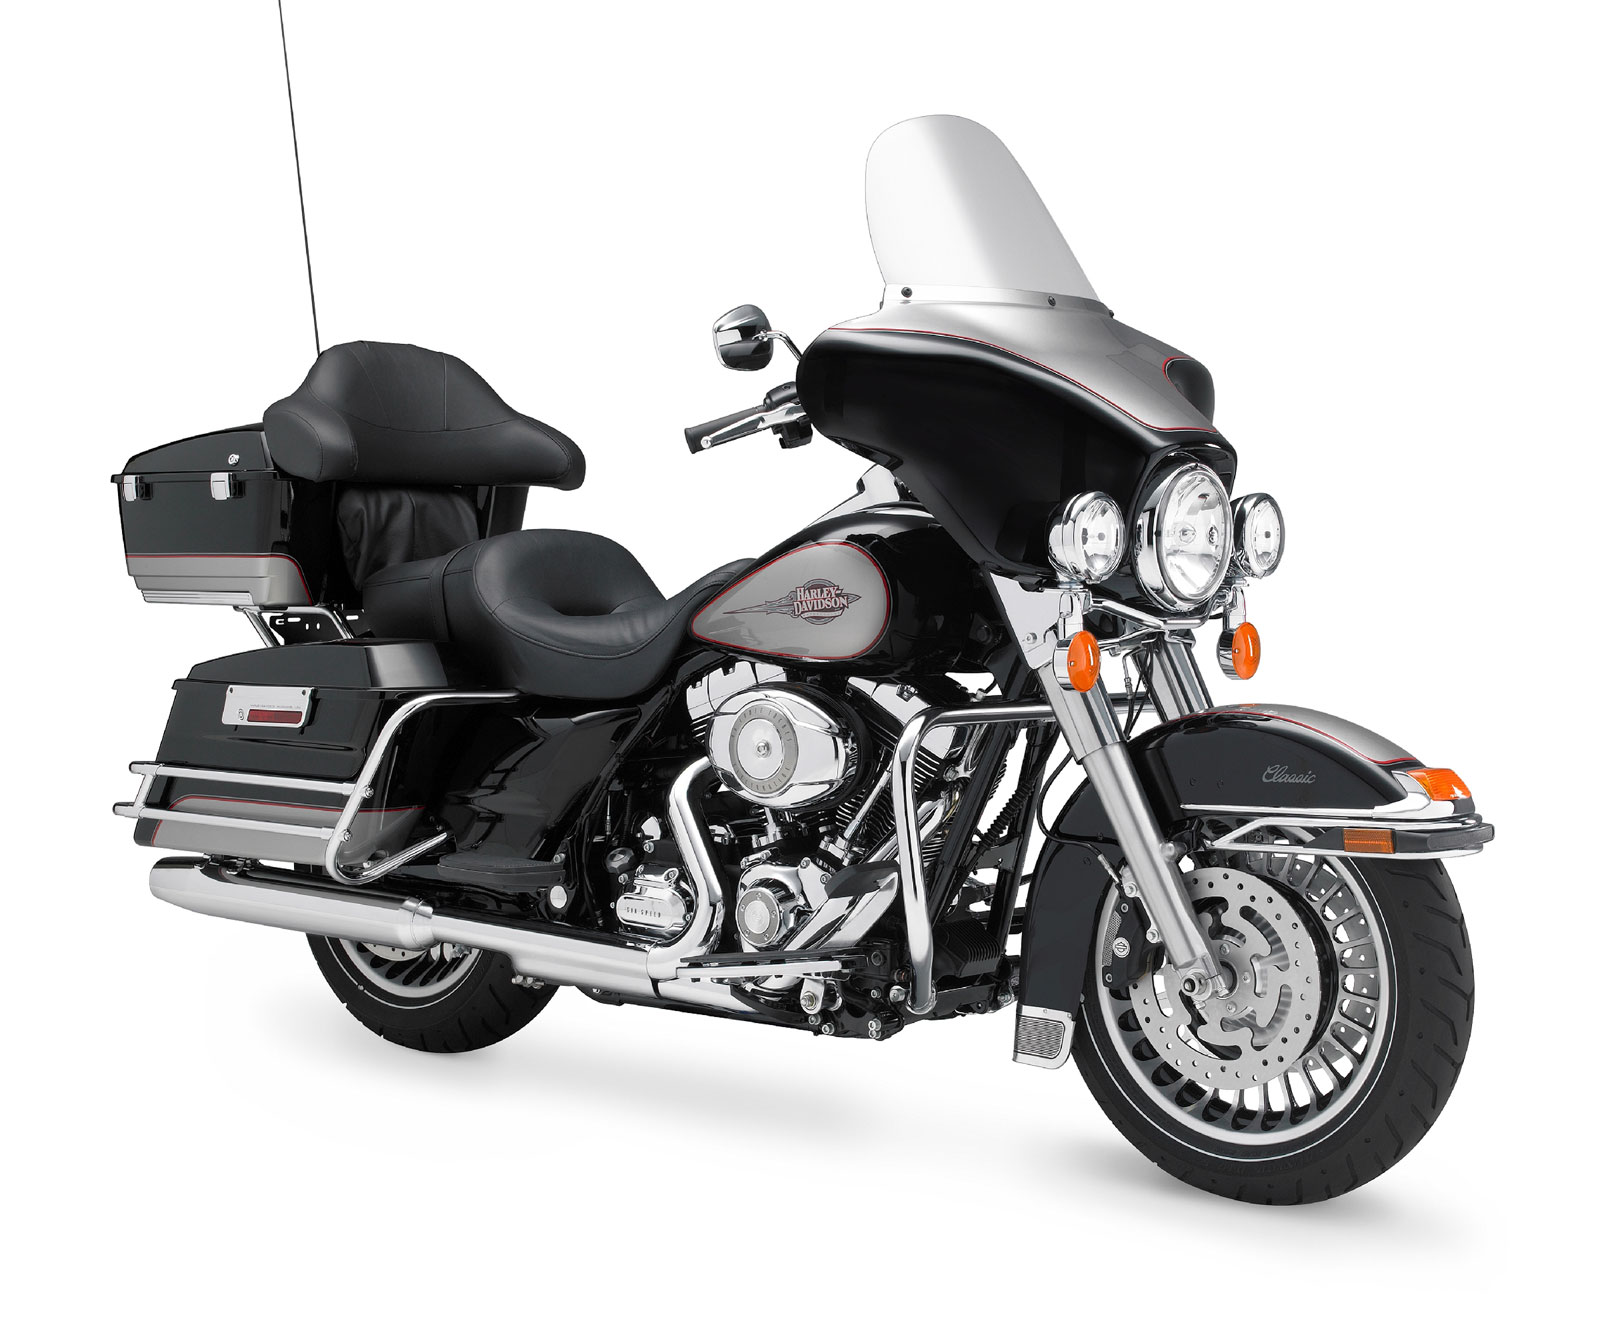 Harley-Davidson FLHTC Electra Glide Classic 2013 pics #19885